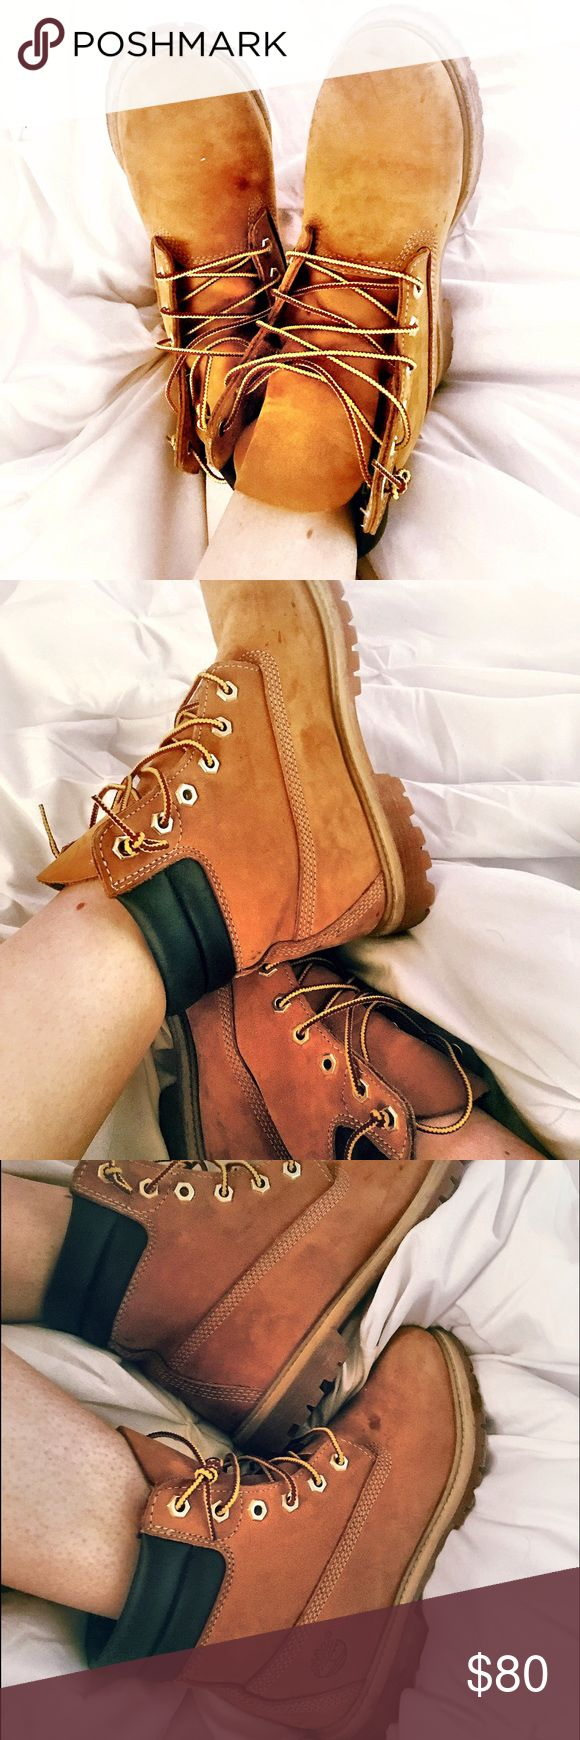 Beautiful Timberlands! 2015 Timberlands for sale. Sleek suede with leather ankle support. Like new shoe strings.  Would go great with a pair of shorts for the summer! Timberland Shoes Lace Up Boots